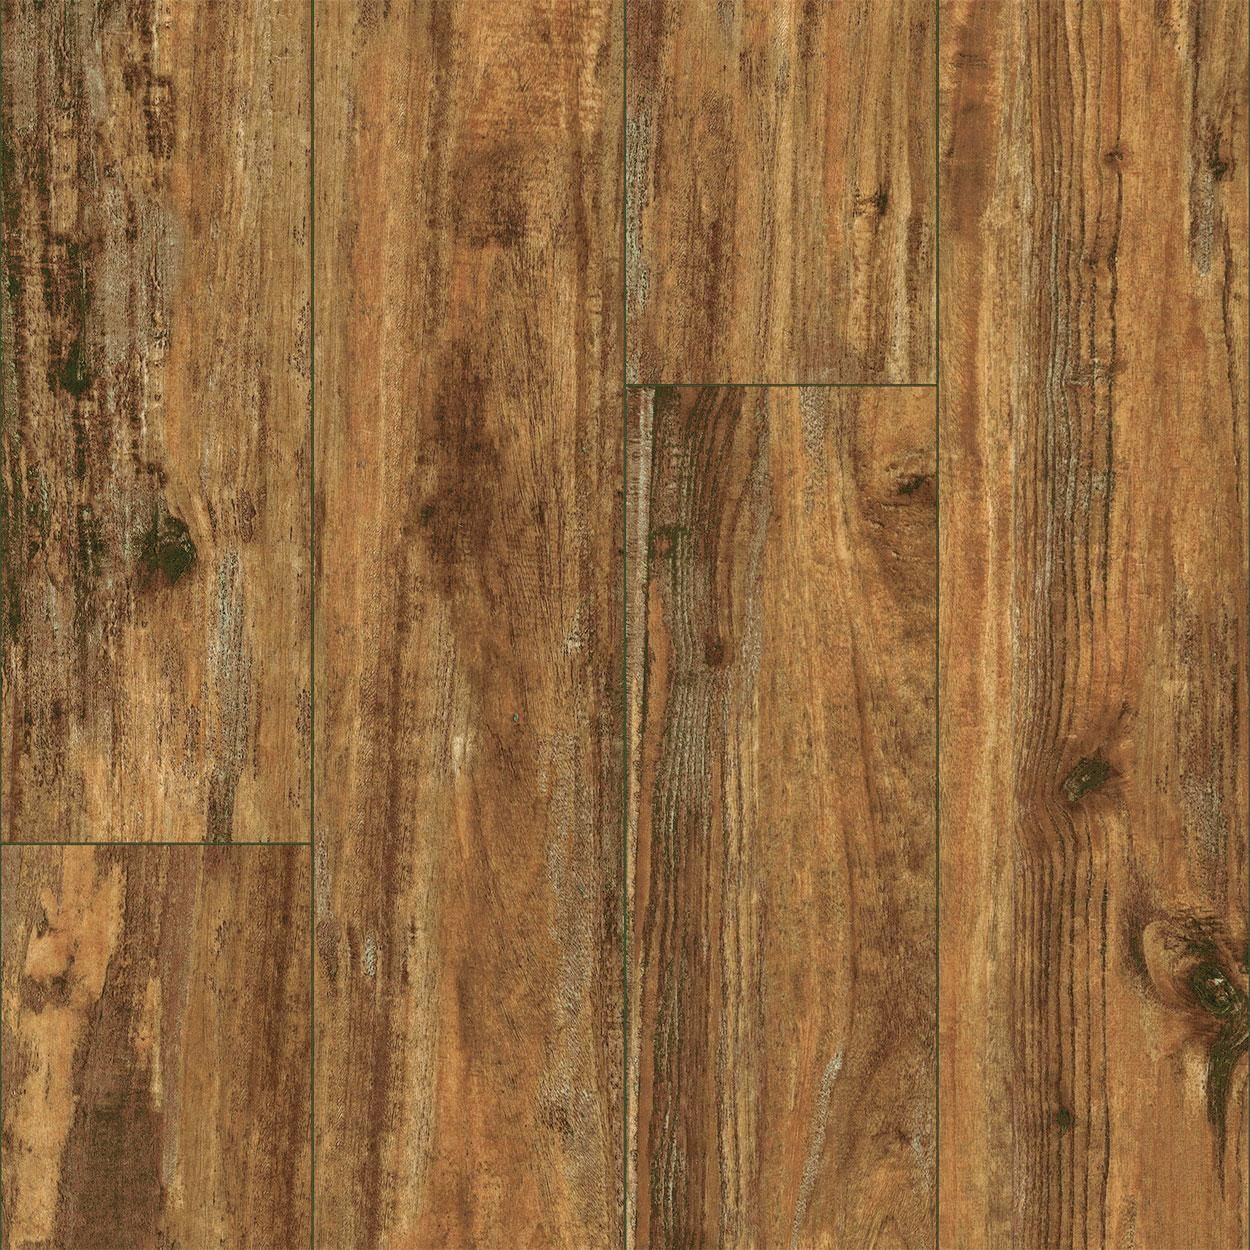 Cypress Flooring For Screened Porch